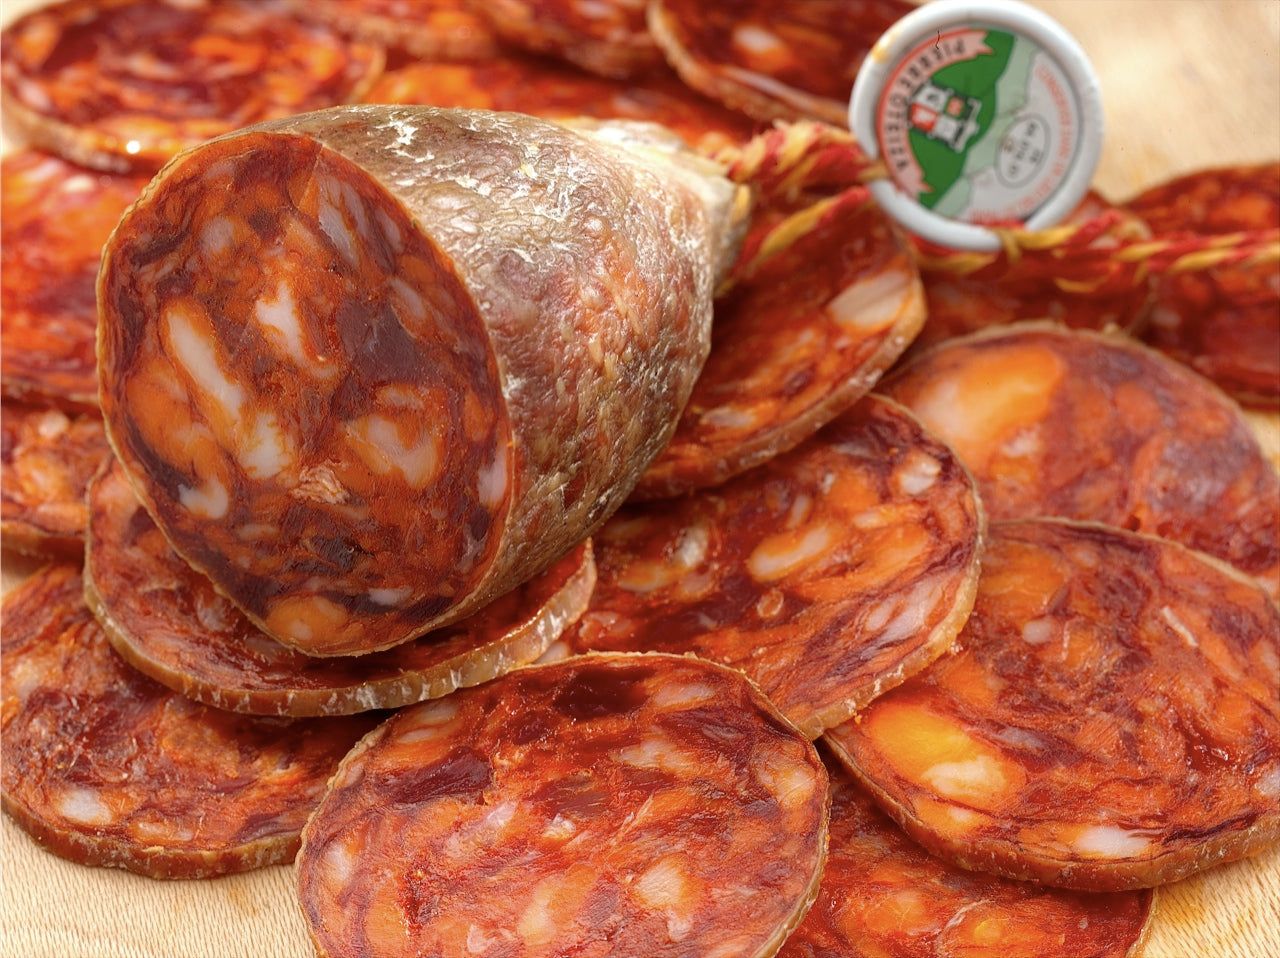 Chorizo. Minimum weight 310g